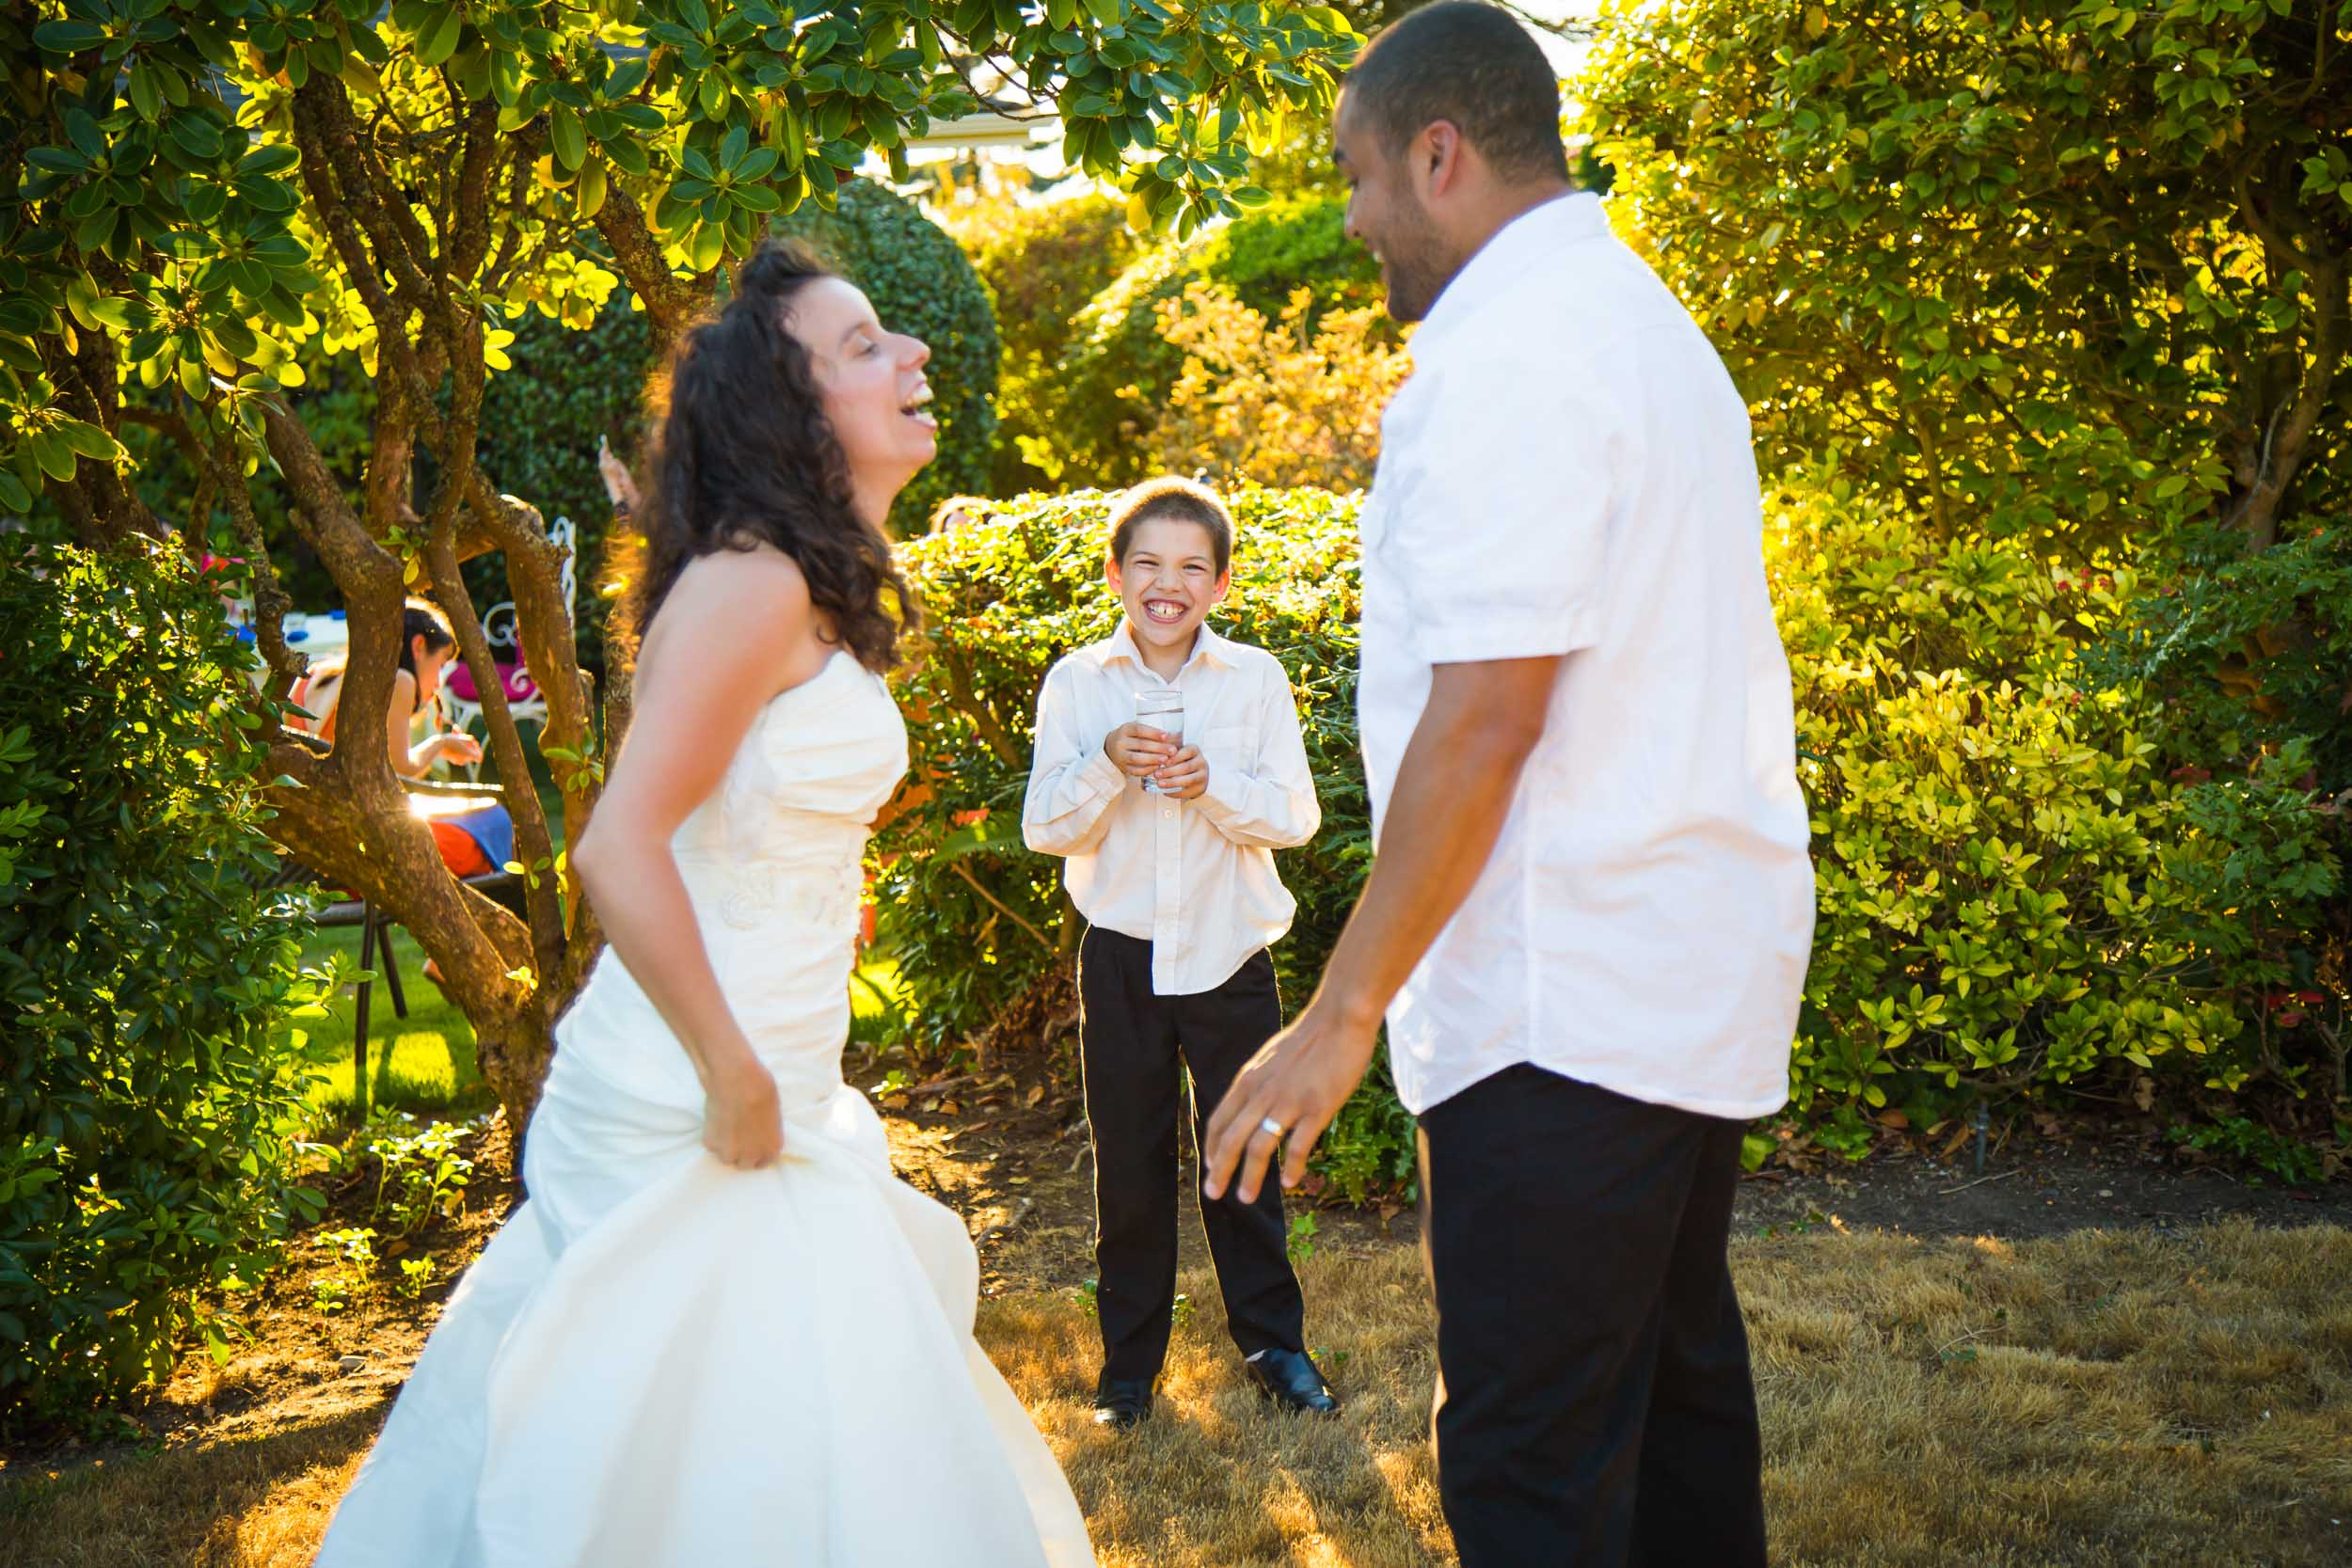 First looks during a summer wedding | Durham Wedding Photographer | By G. Lin Photography